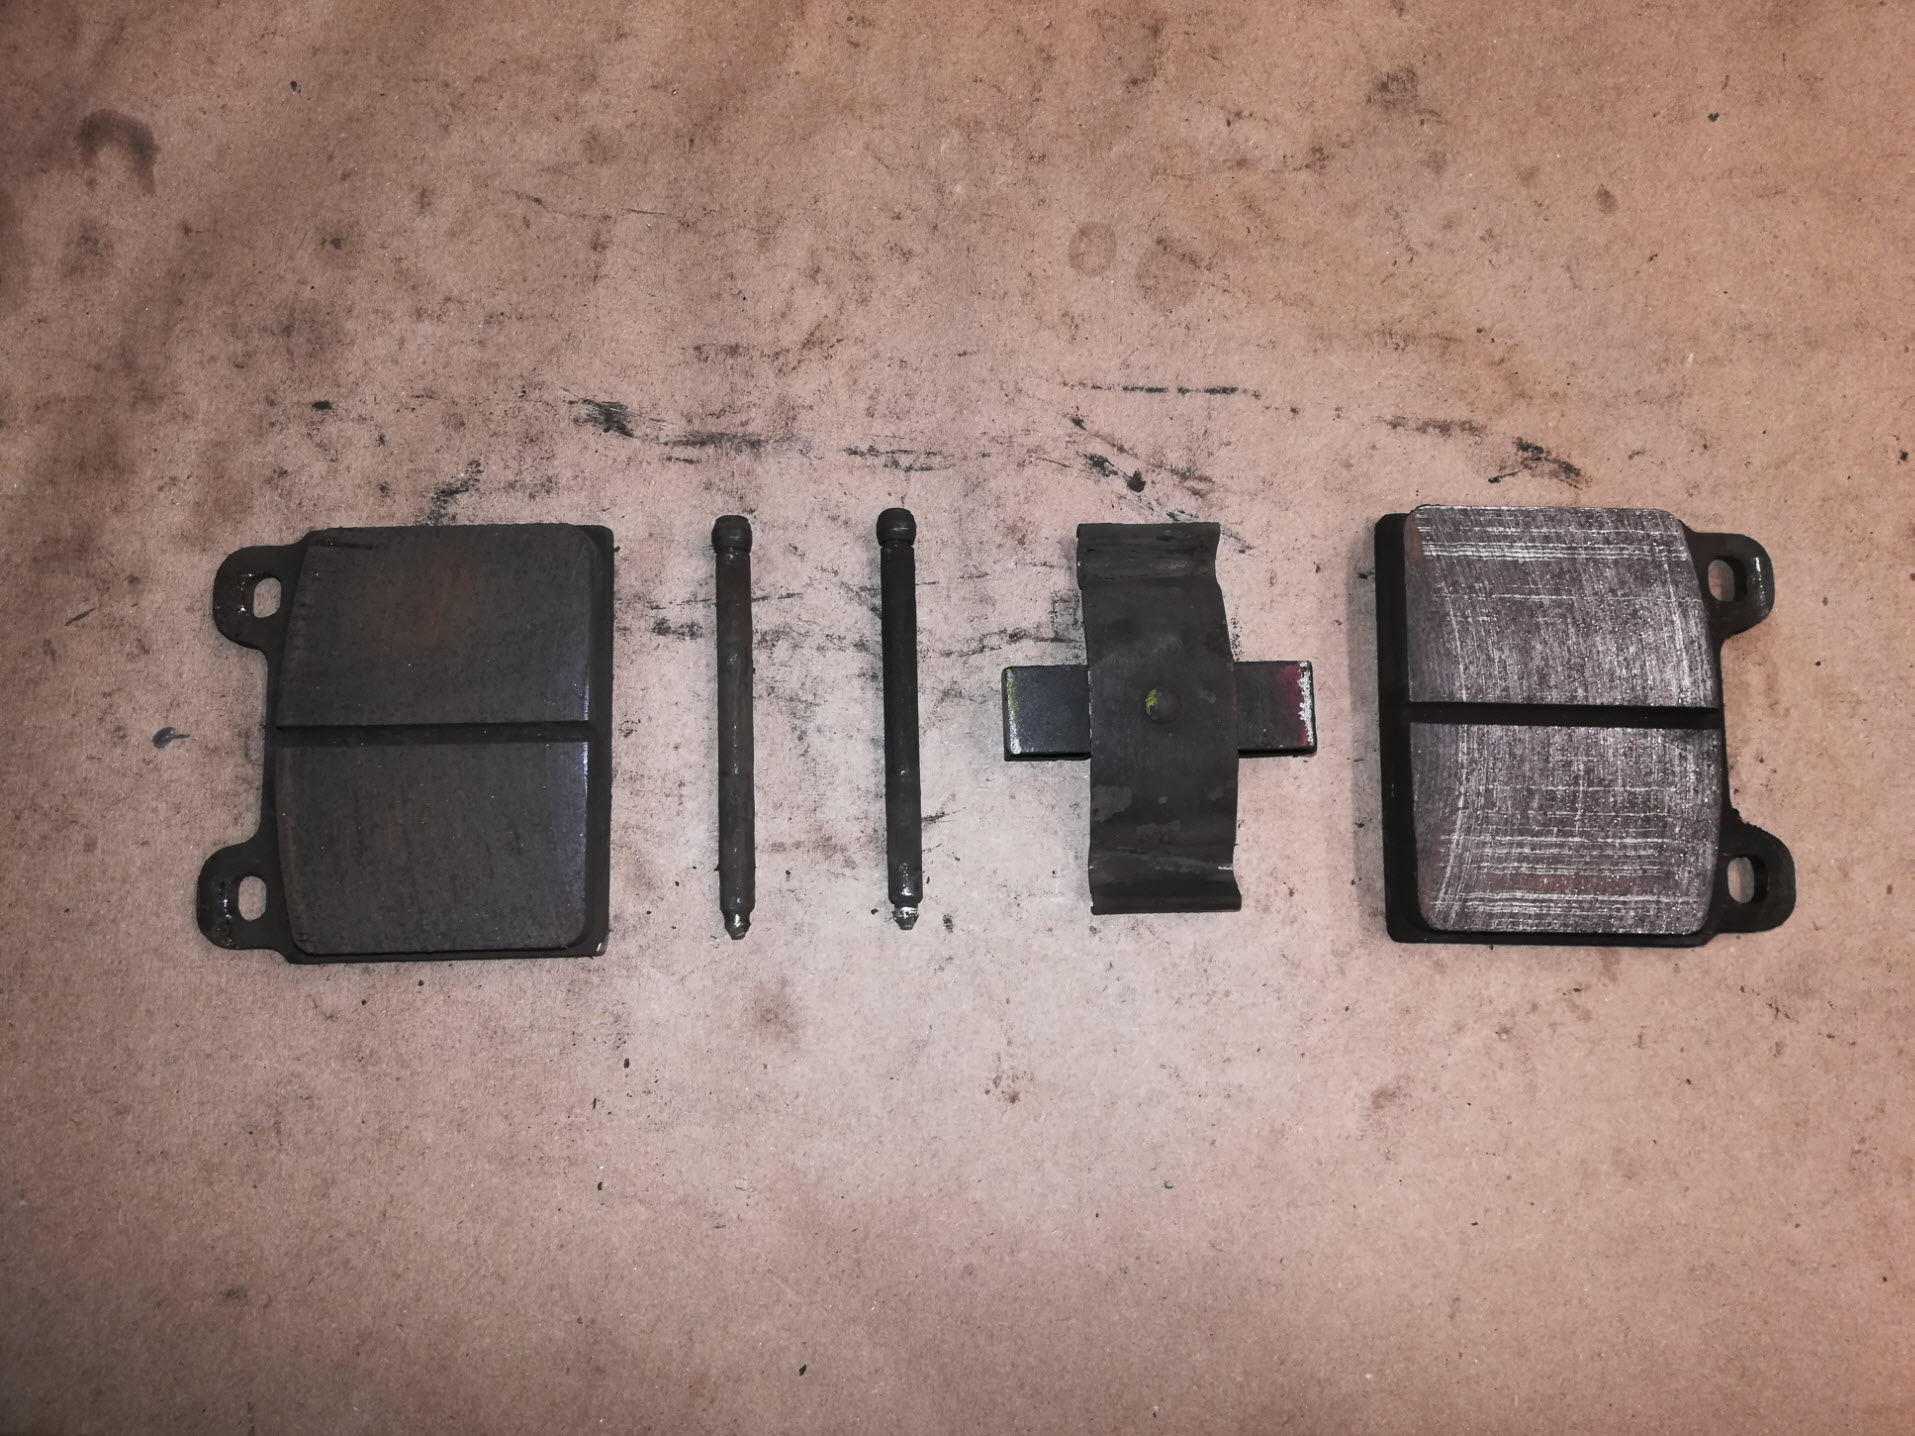 Air-cooled Porsche 911 brake pads and retaining hardware.